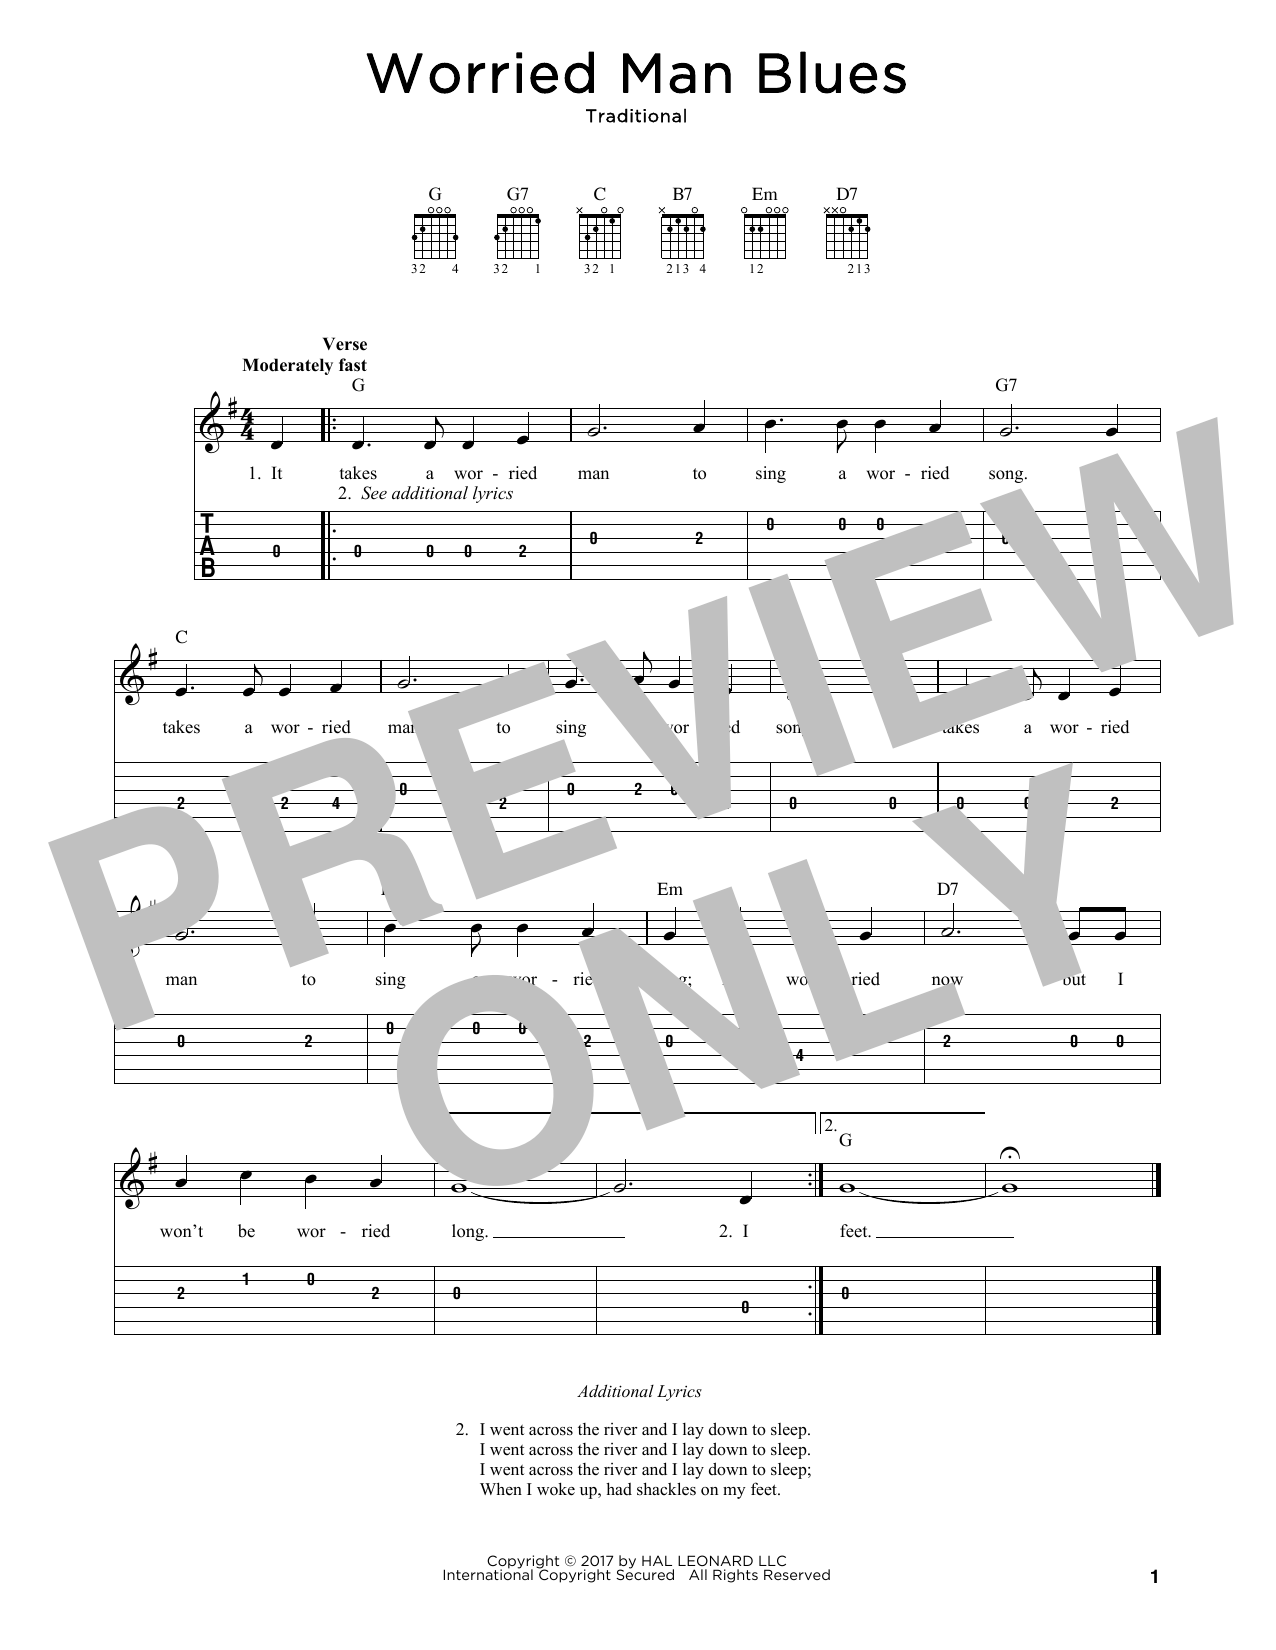 Worried Man Blues Sheet Music